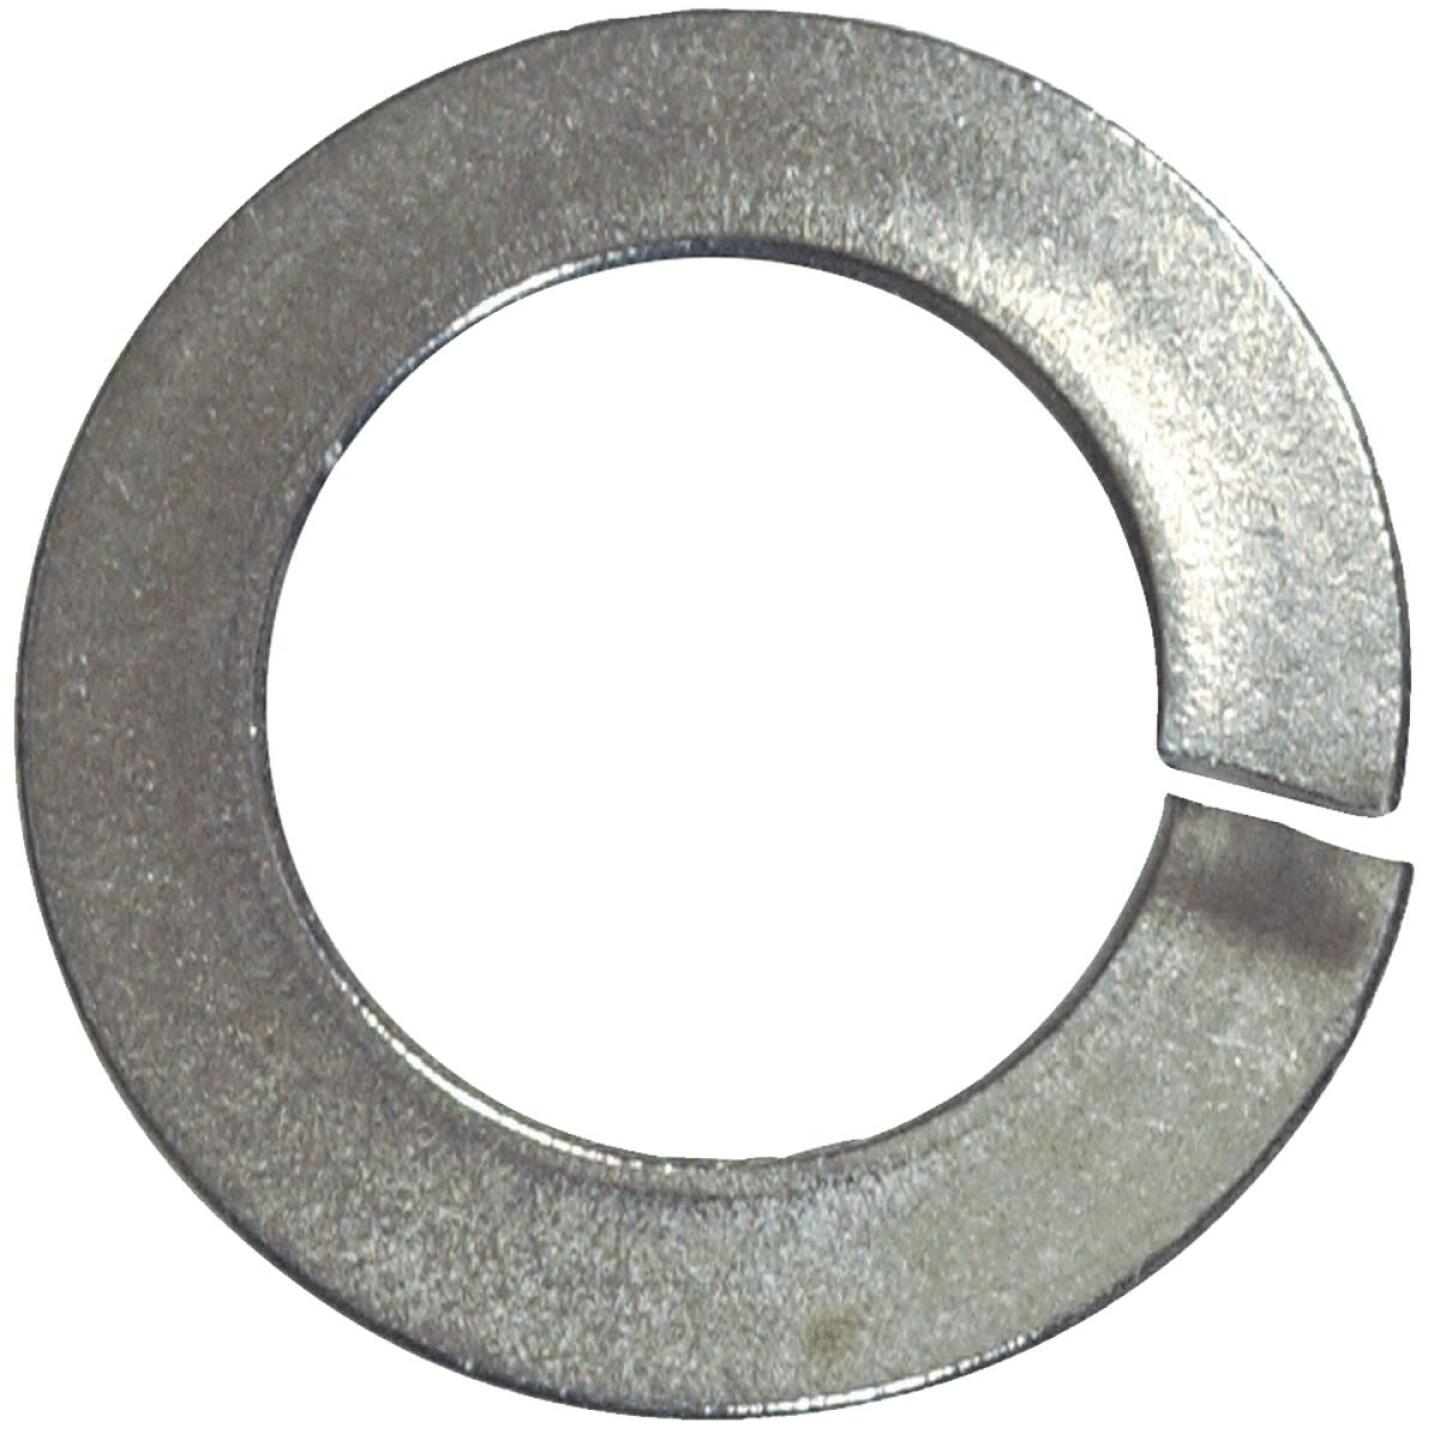 Hillman 3/8 In. Stainless Steel Split Lock Washer (100 Ct.) Image 1